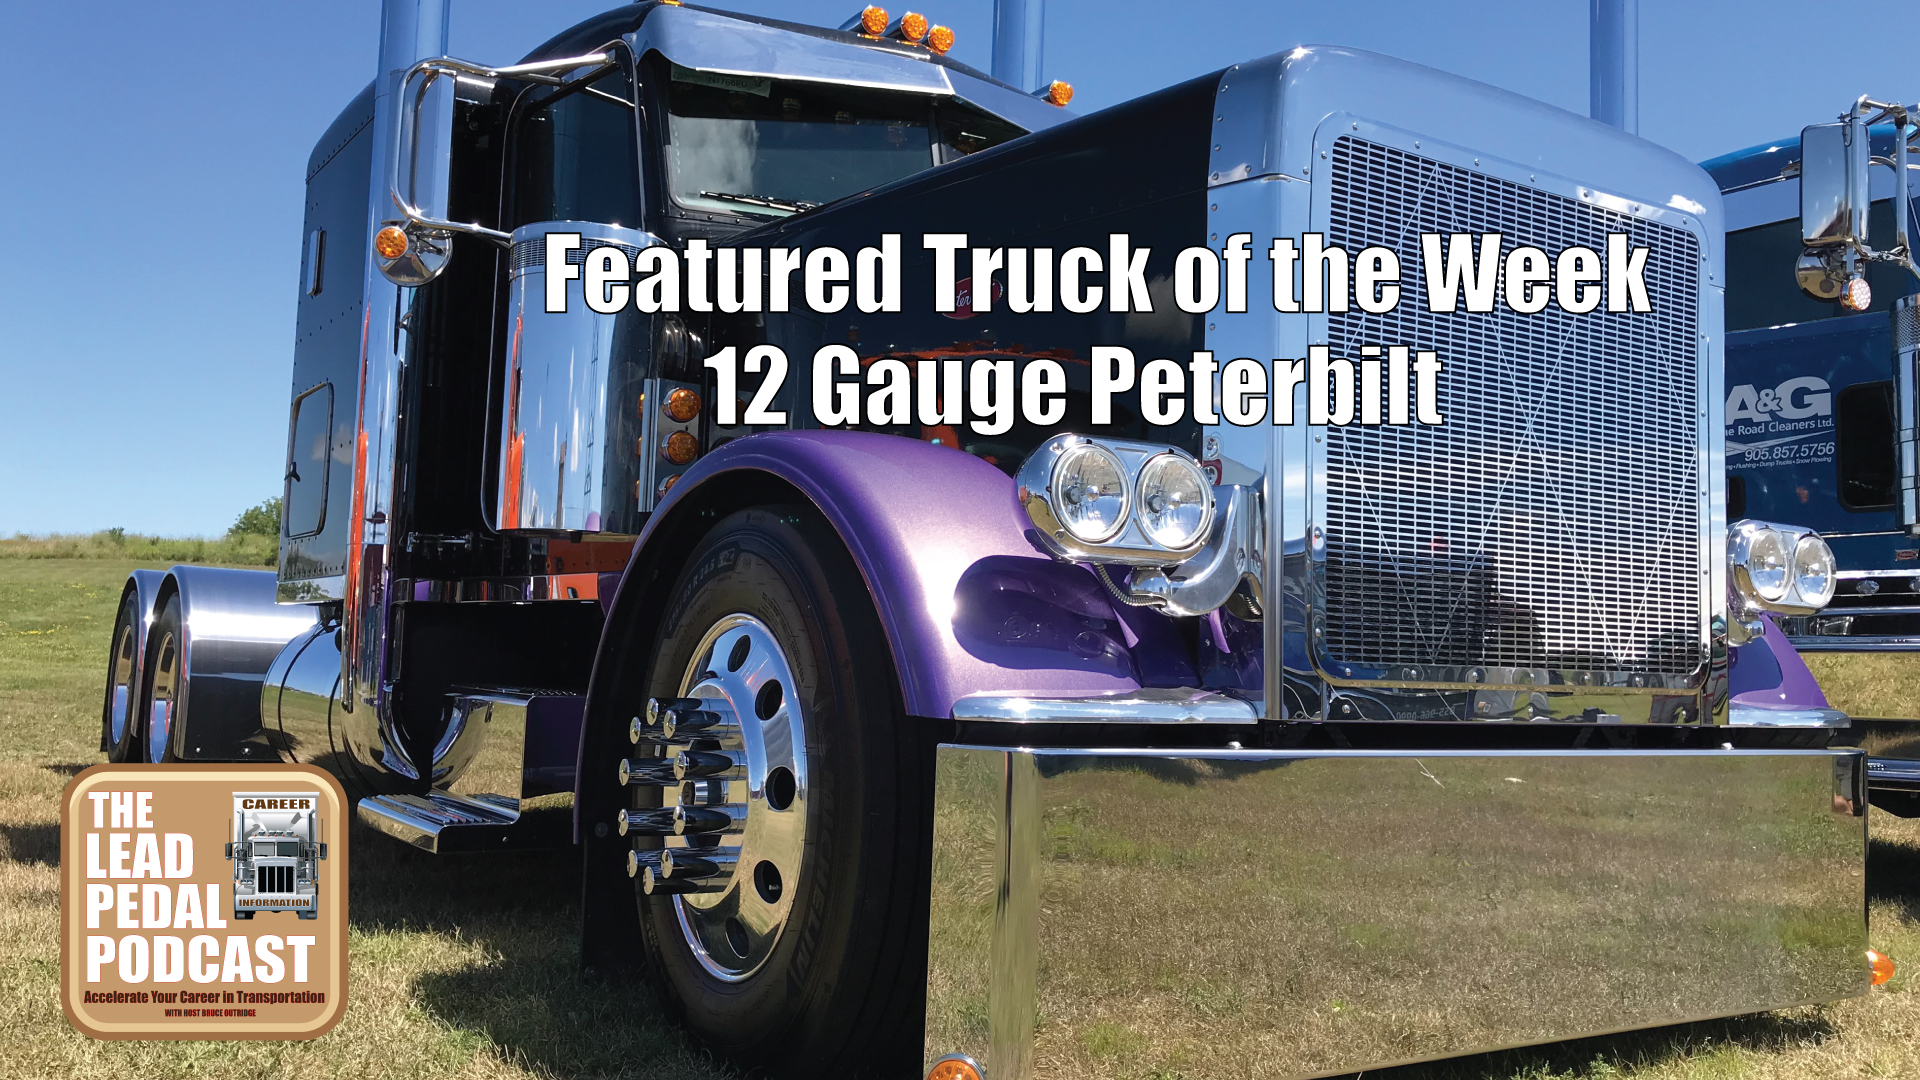 Feature truck of gthe Week